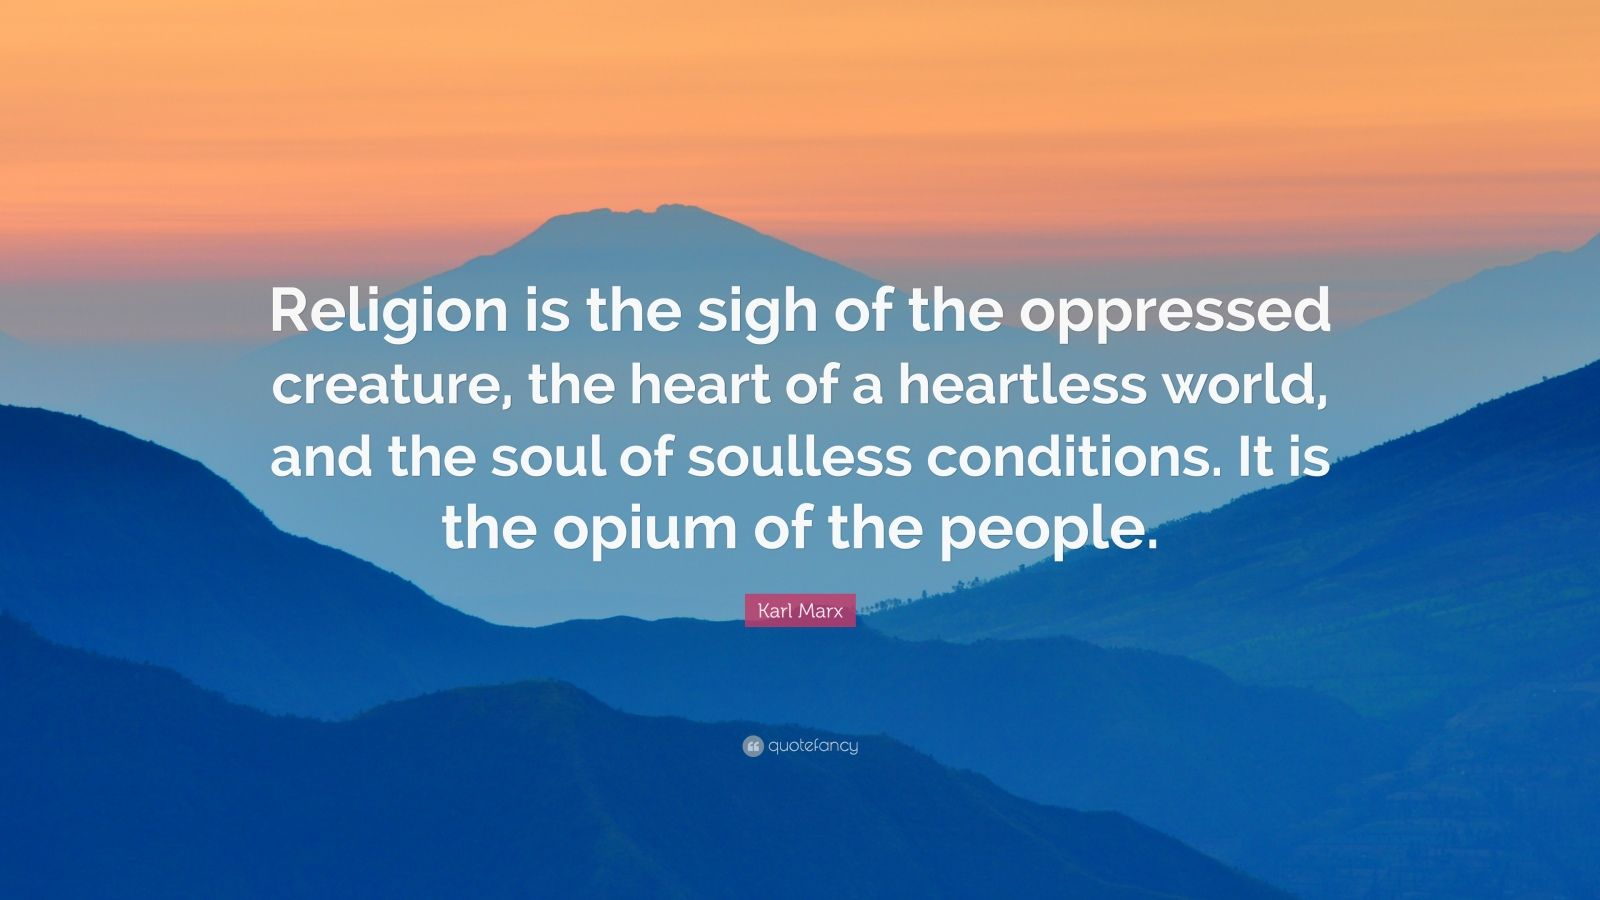 religion as the opium of the Religion is the opium of the masses is the argument often used by atheists to dismiss religion without addressing the substantial issues it deals with though.